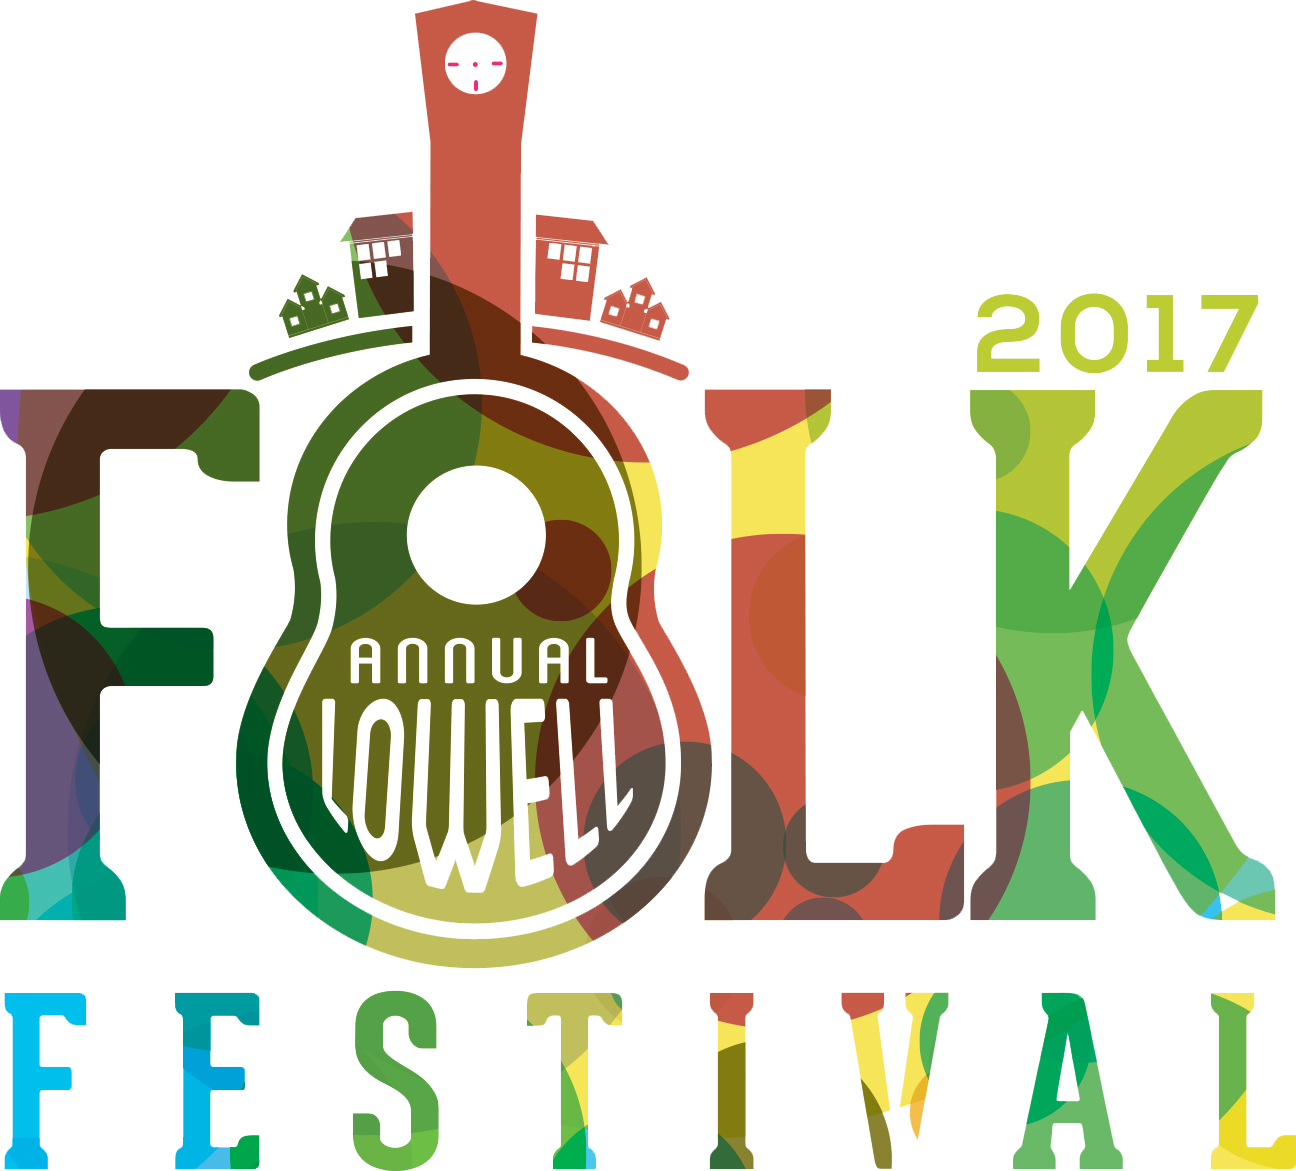 The Lowell Folk Festival 2017.